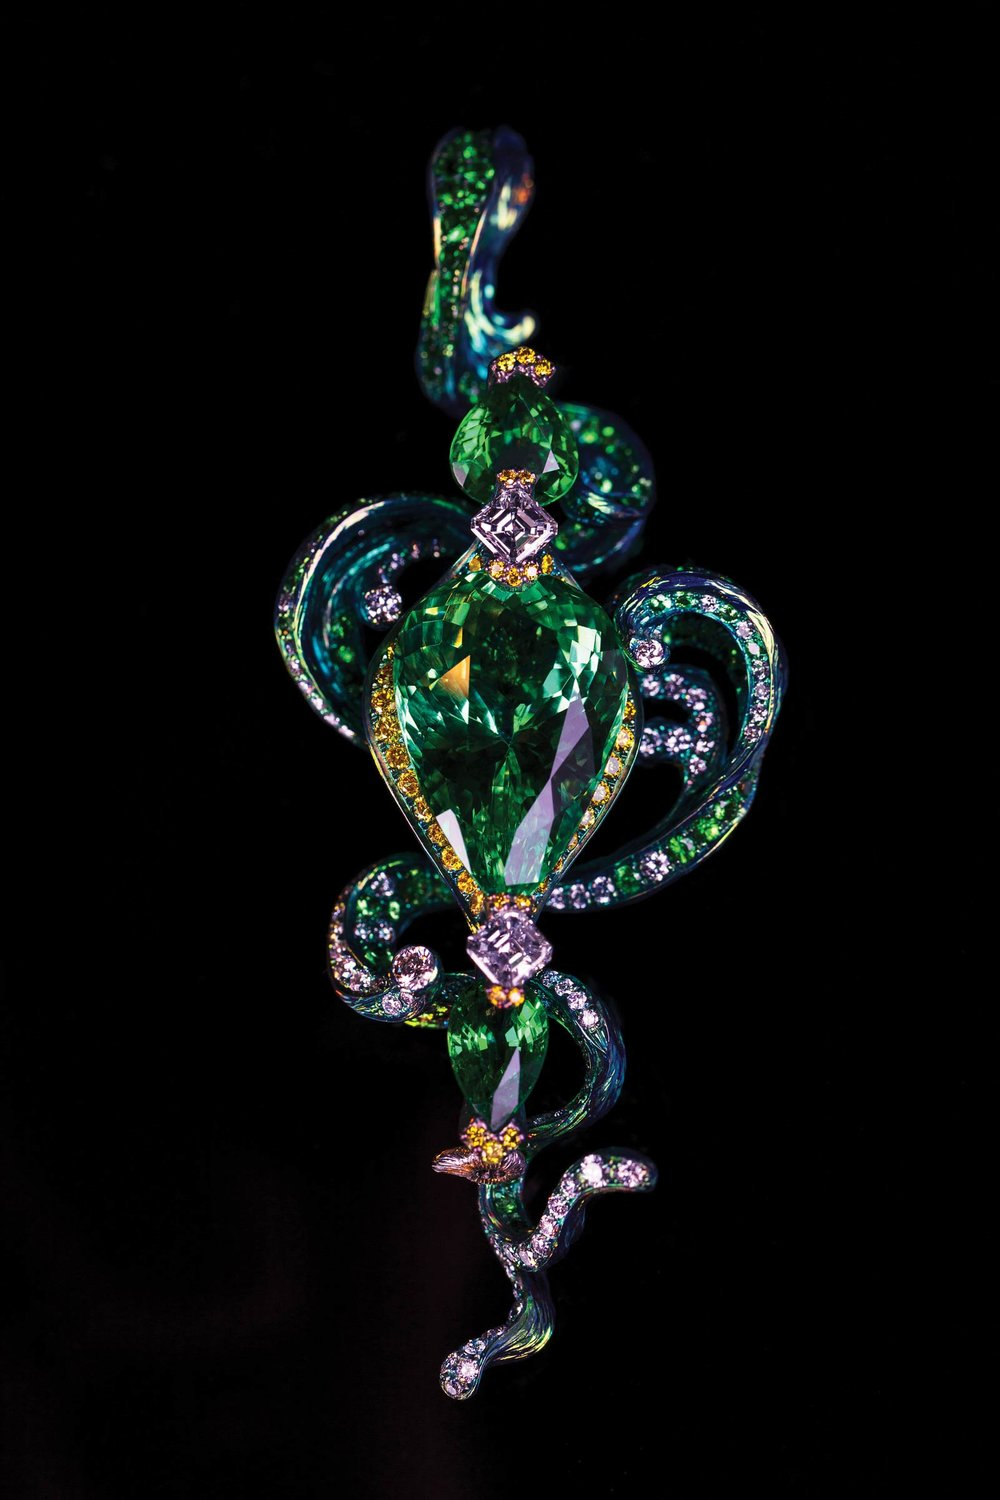 Transformable Brooch, Necklace The Waves   The interaction of light playing off of the gemstones creates reflections that add a new perception of depth. Around the wings' edges, diamonds are set on titanium, adding further dimensionality as the butterfly glides through the air.